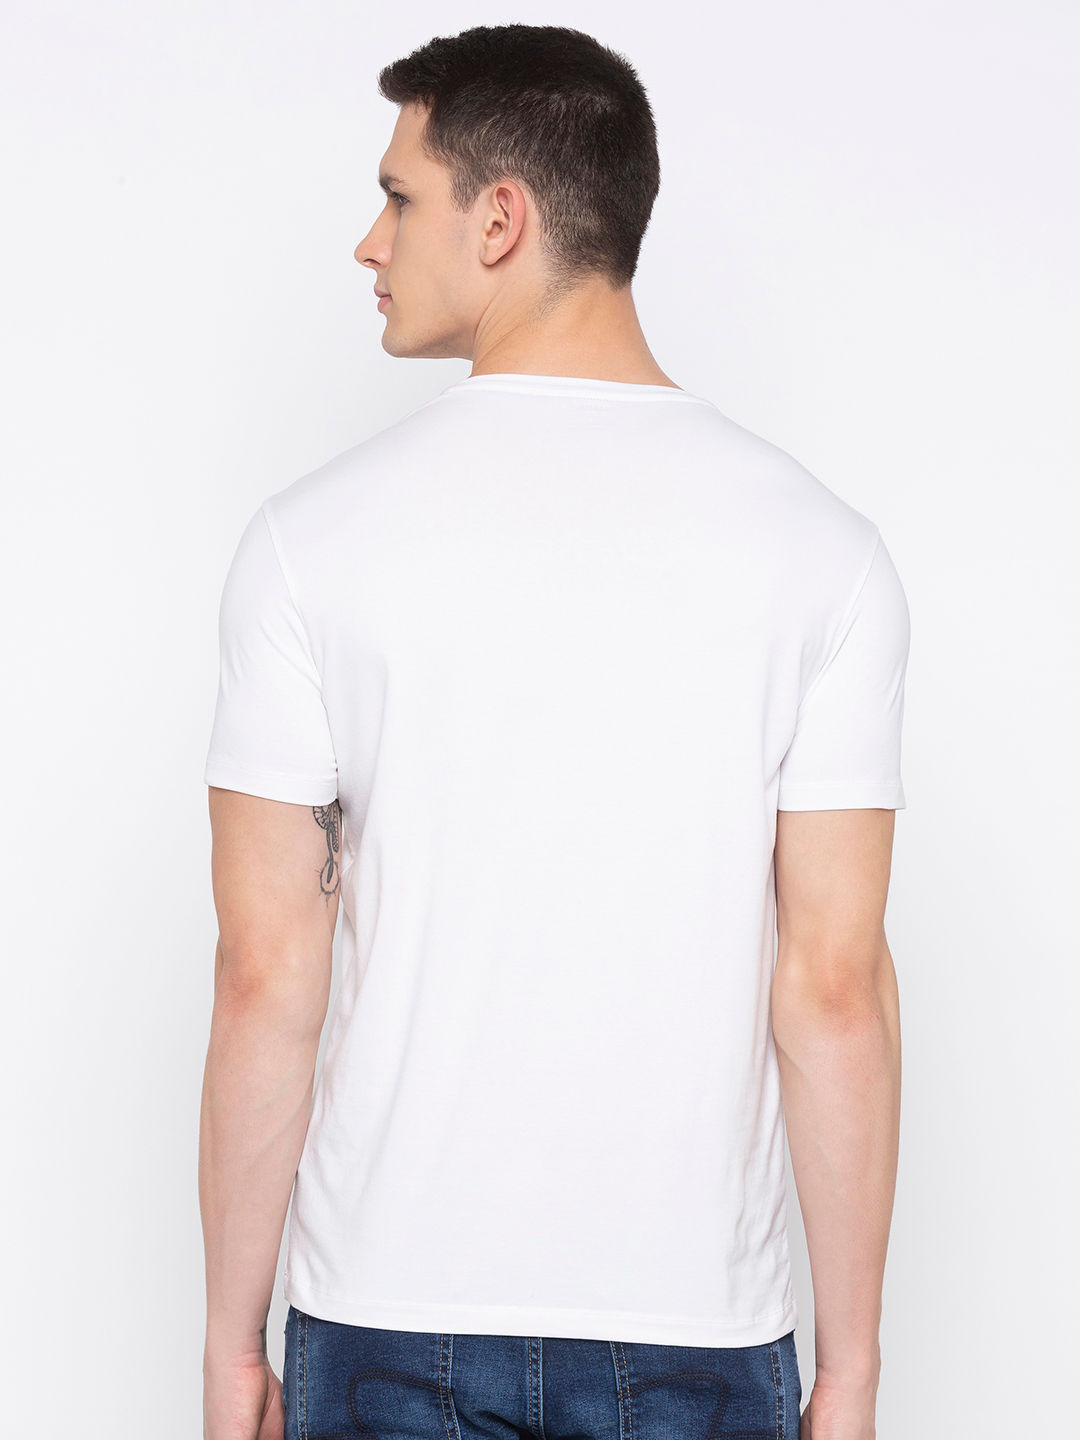 White Printed T-Shirt